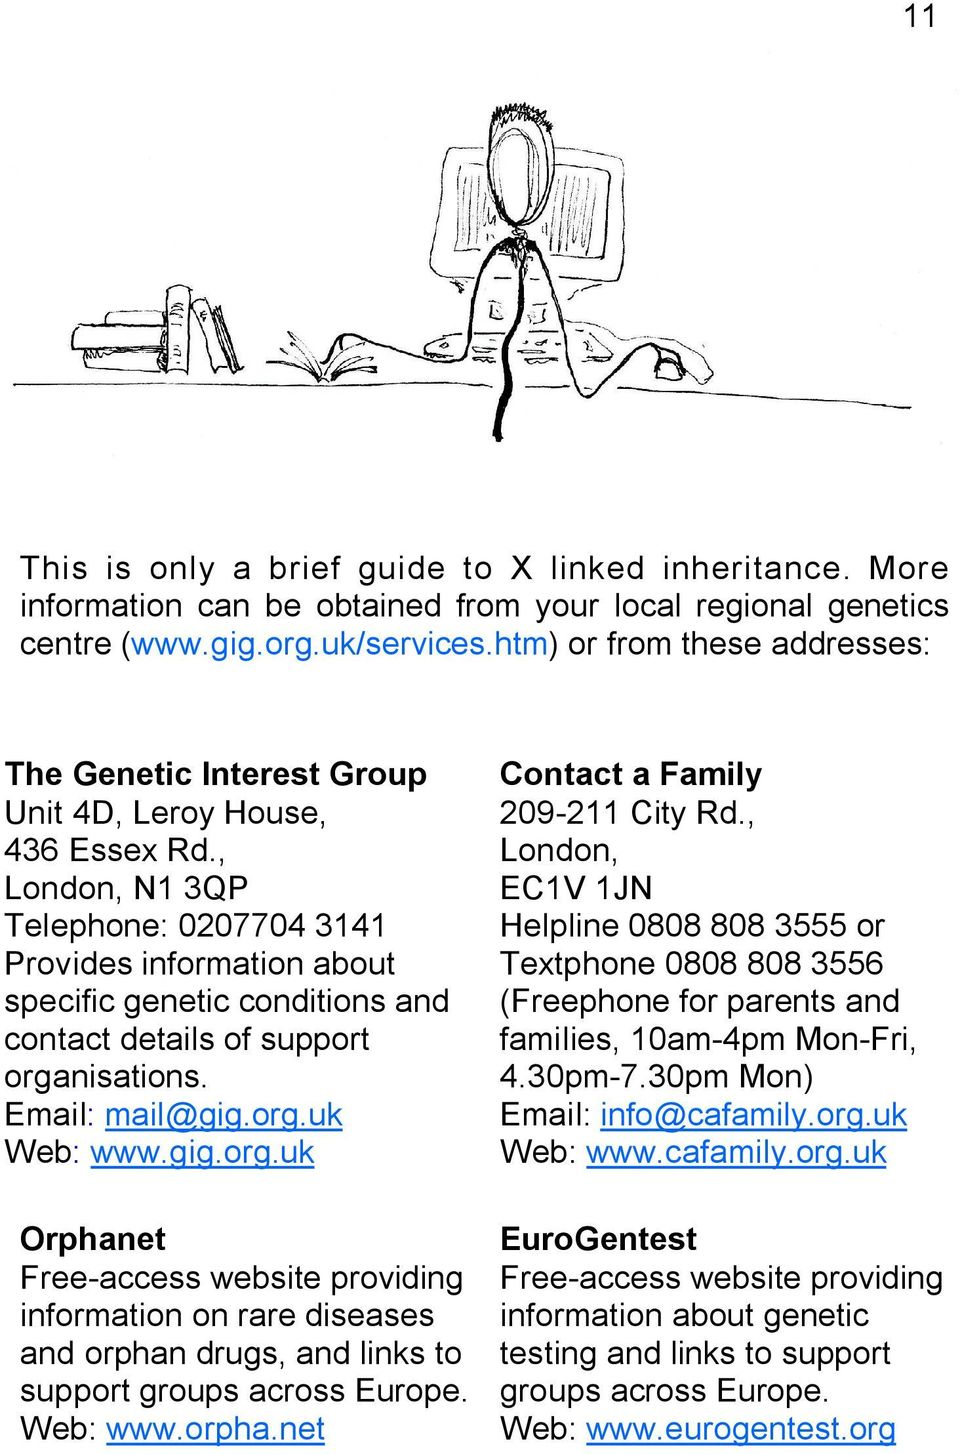 , London, N1 3QP Telephone: 0207704 3141 Provides information about specific genetic conditions and contact details of support orga